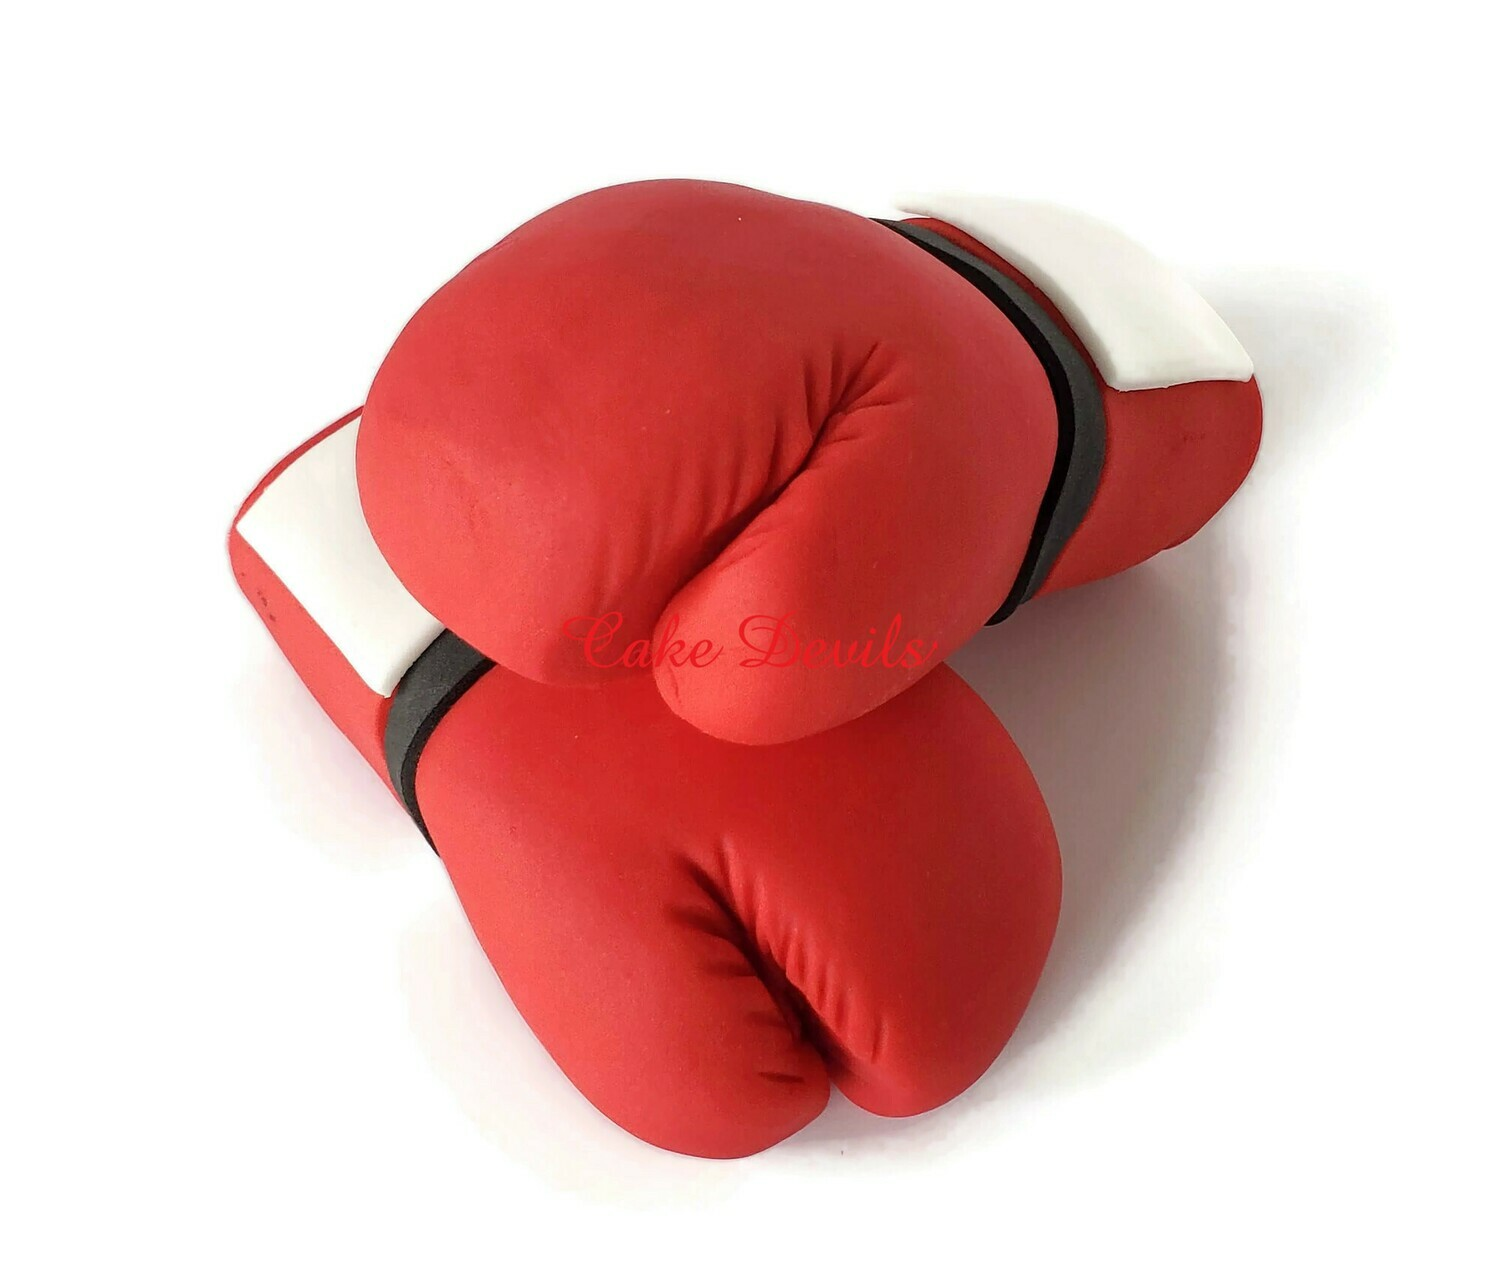 Fondant Boxing Gloves Cake Toppers, Cake Decorations for a Boxer